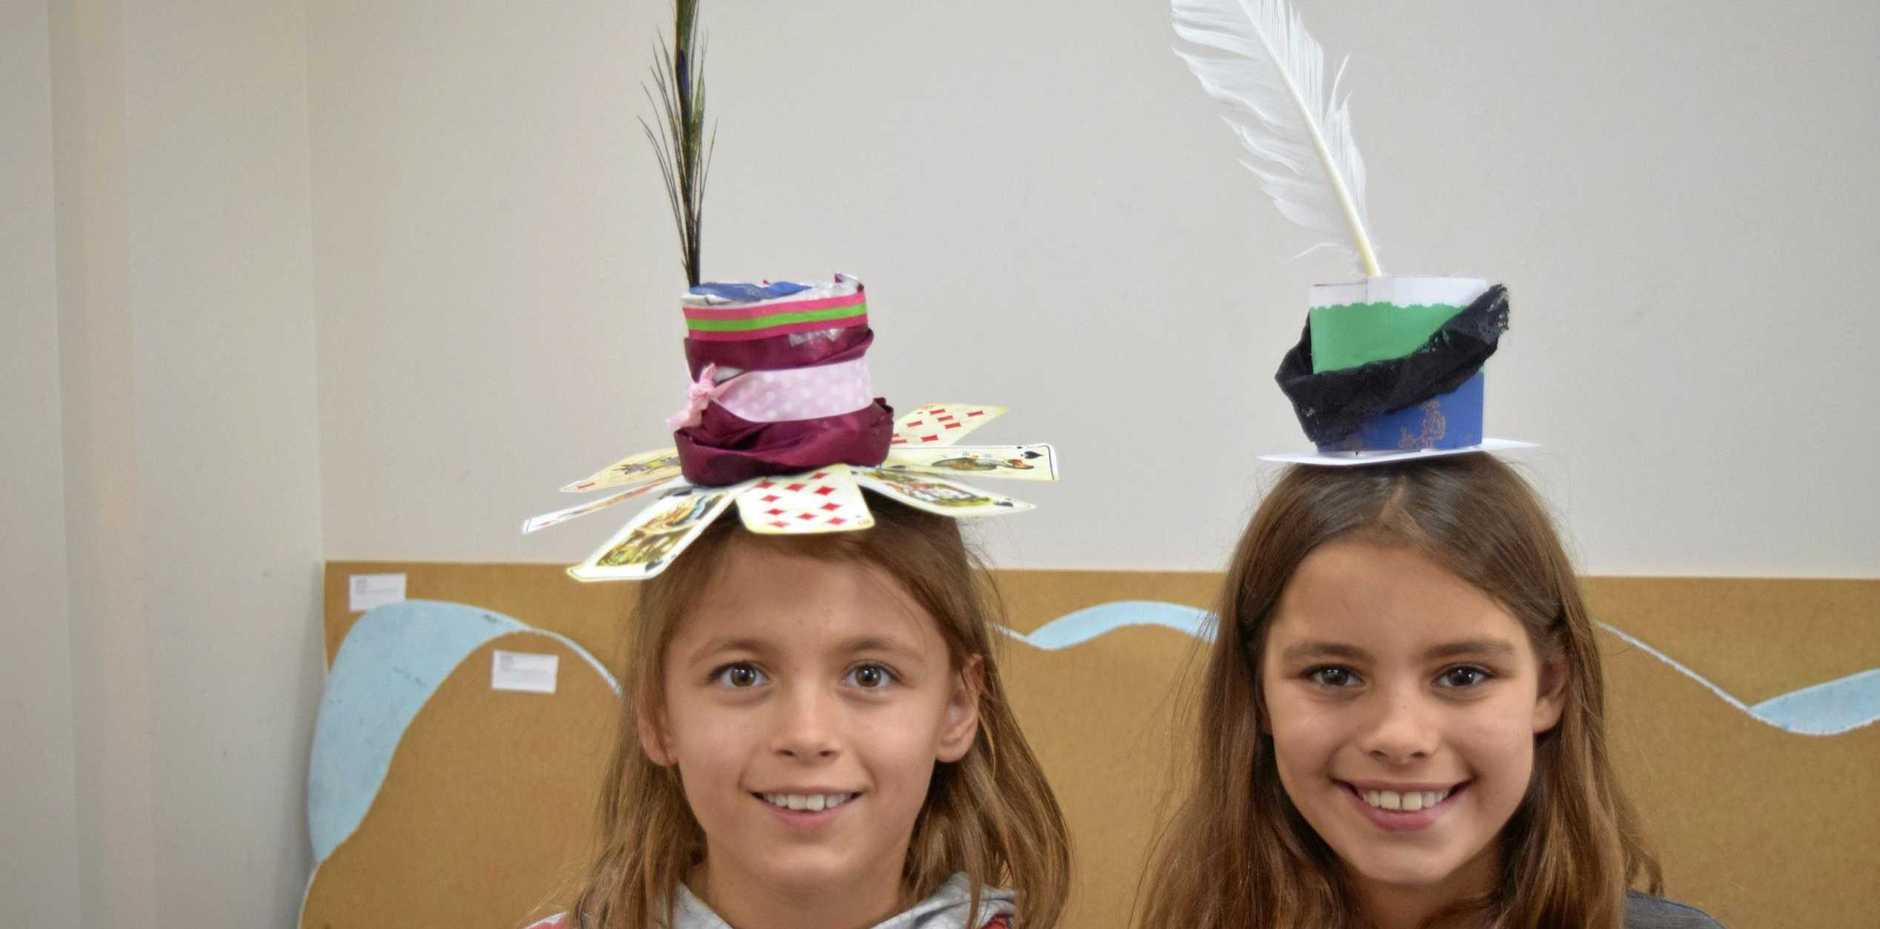 Woodwark twins Zahra Venter, 9, and Eloise Venter, 9, with the hats they made at the Mad Hatter's Tea Party at Cannonvale Library.